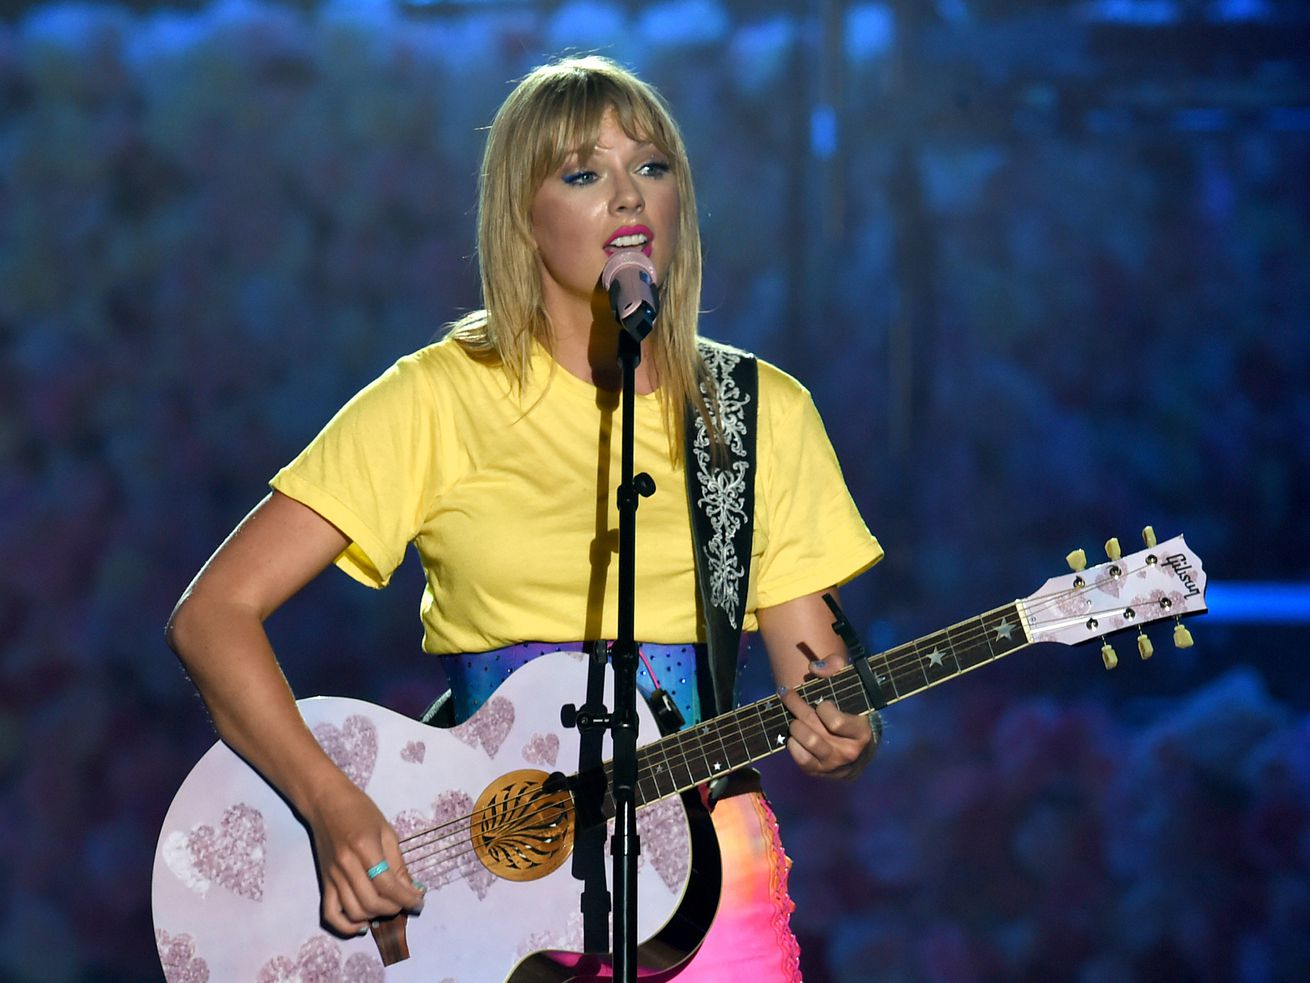 Taylor Swift performs at Dignity Health Sports Park on June 1, 2019, in Carson, California.